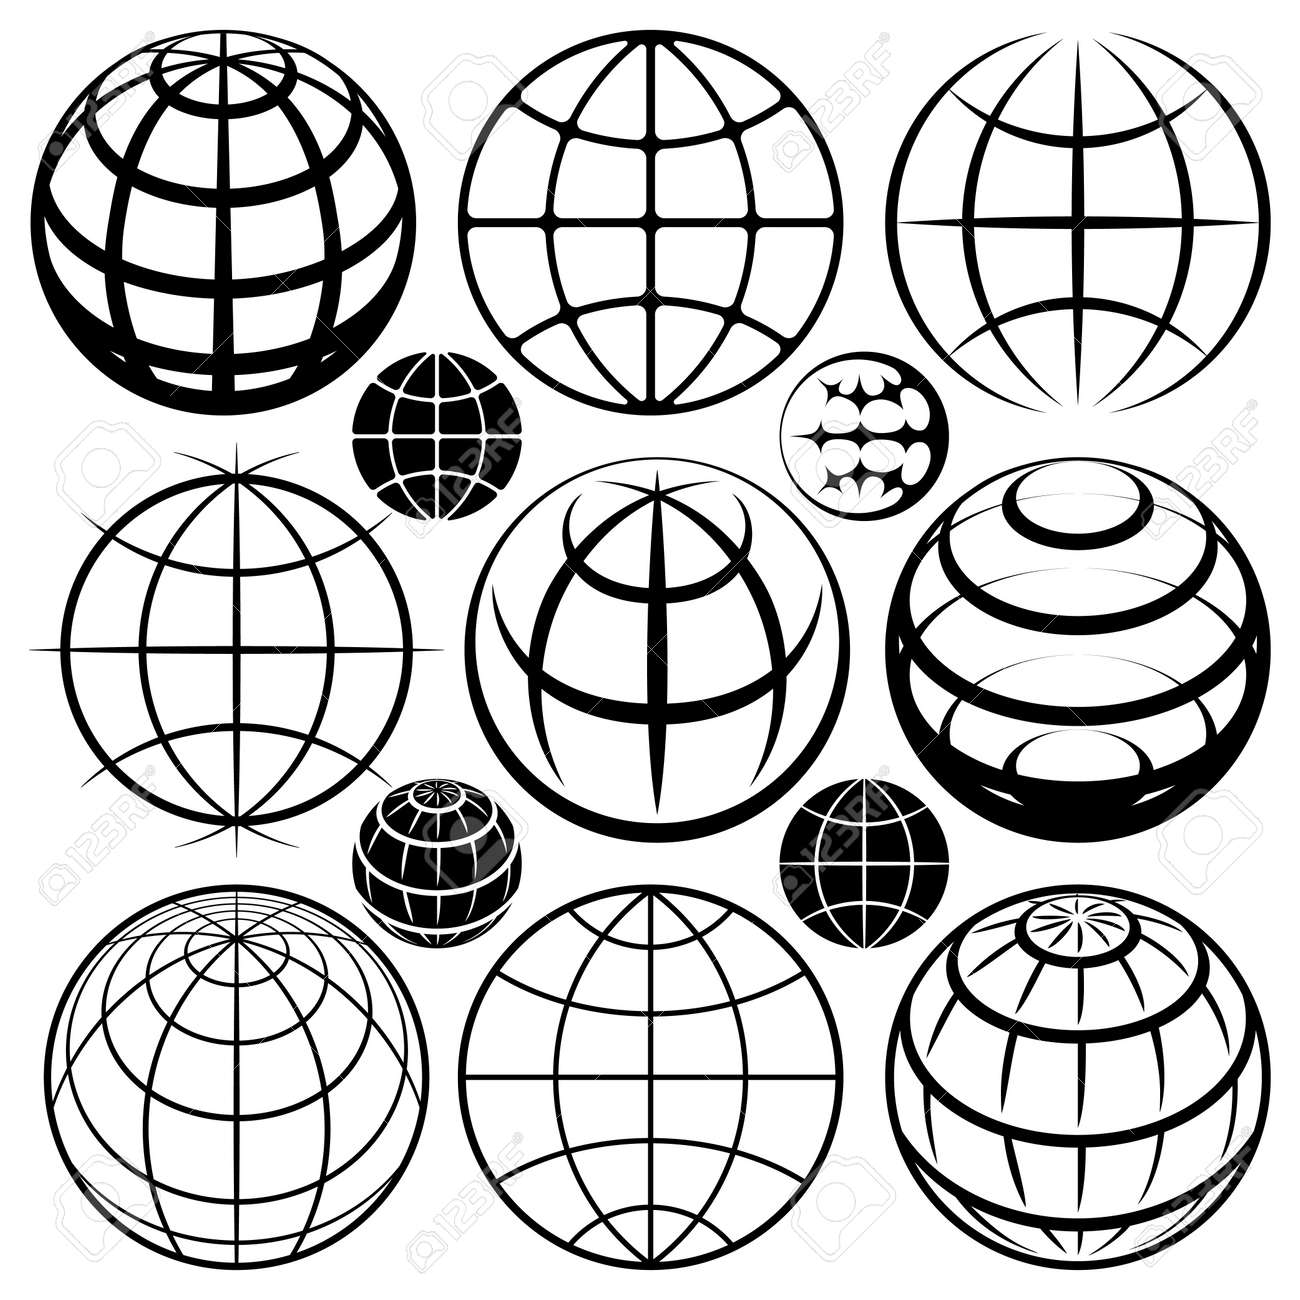 Awesome oval wire globe clip art model wiring diagram ideas